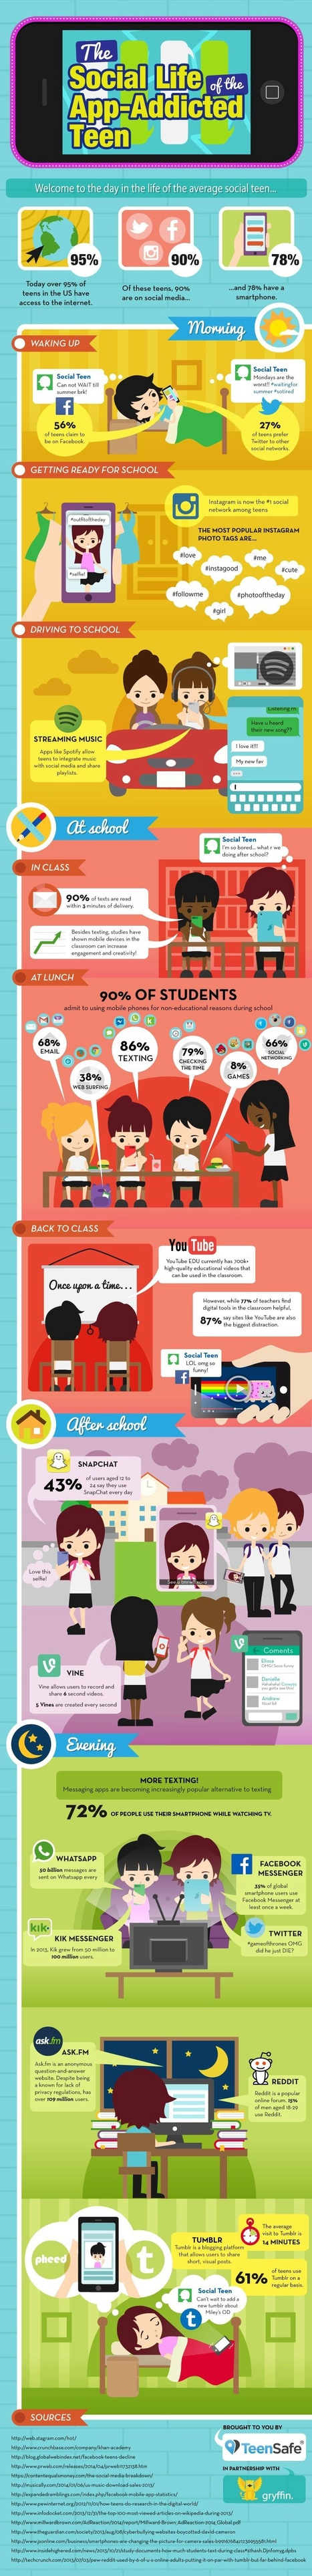 The Social Life of the App-Addicted Teen [Infographic] | Social Media Strategies | Scoop.it